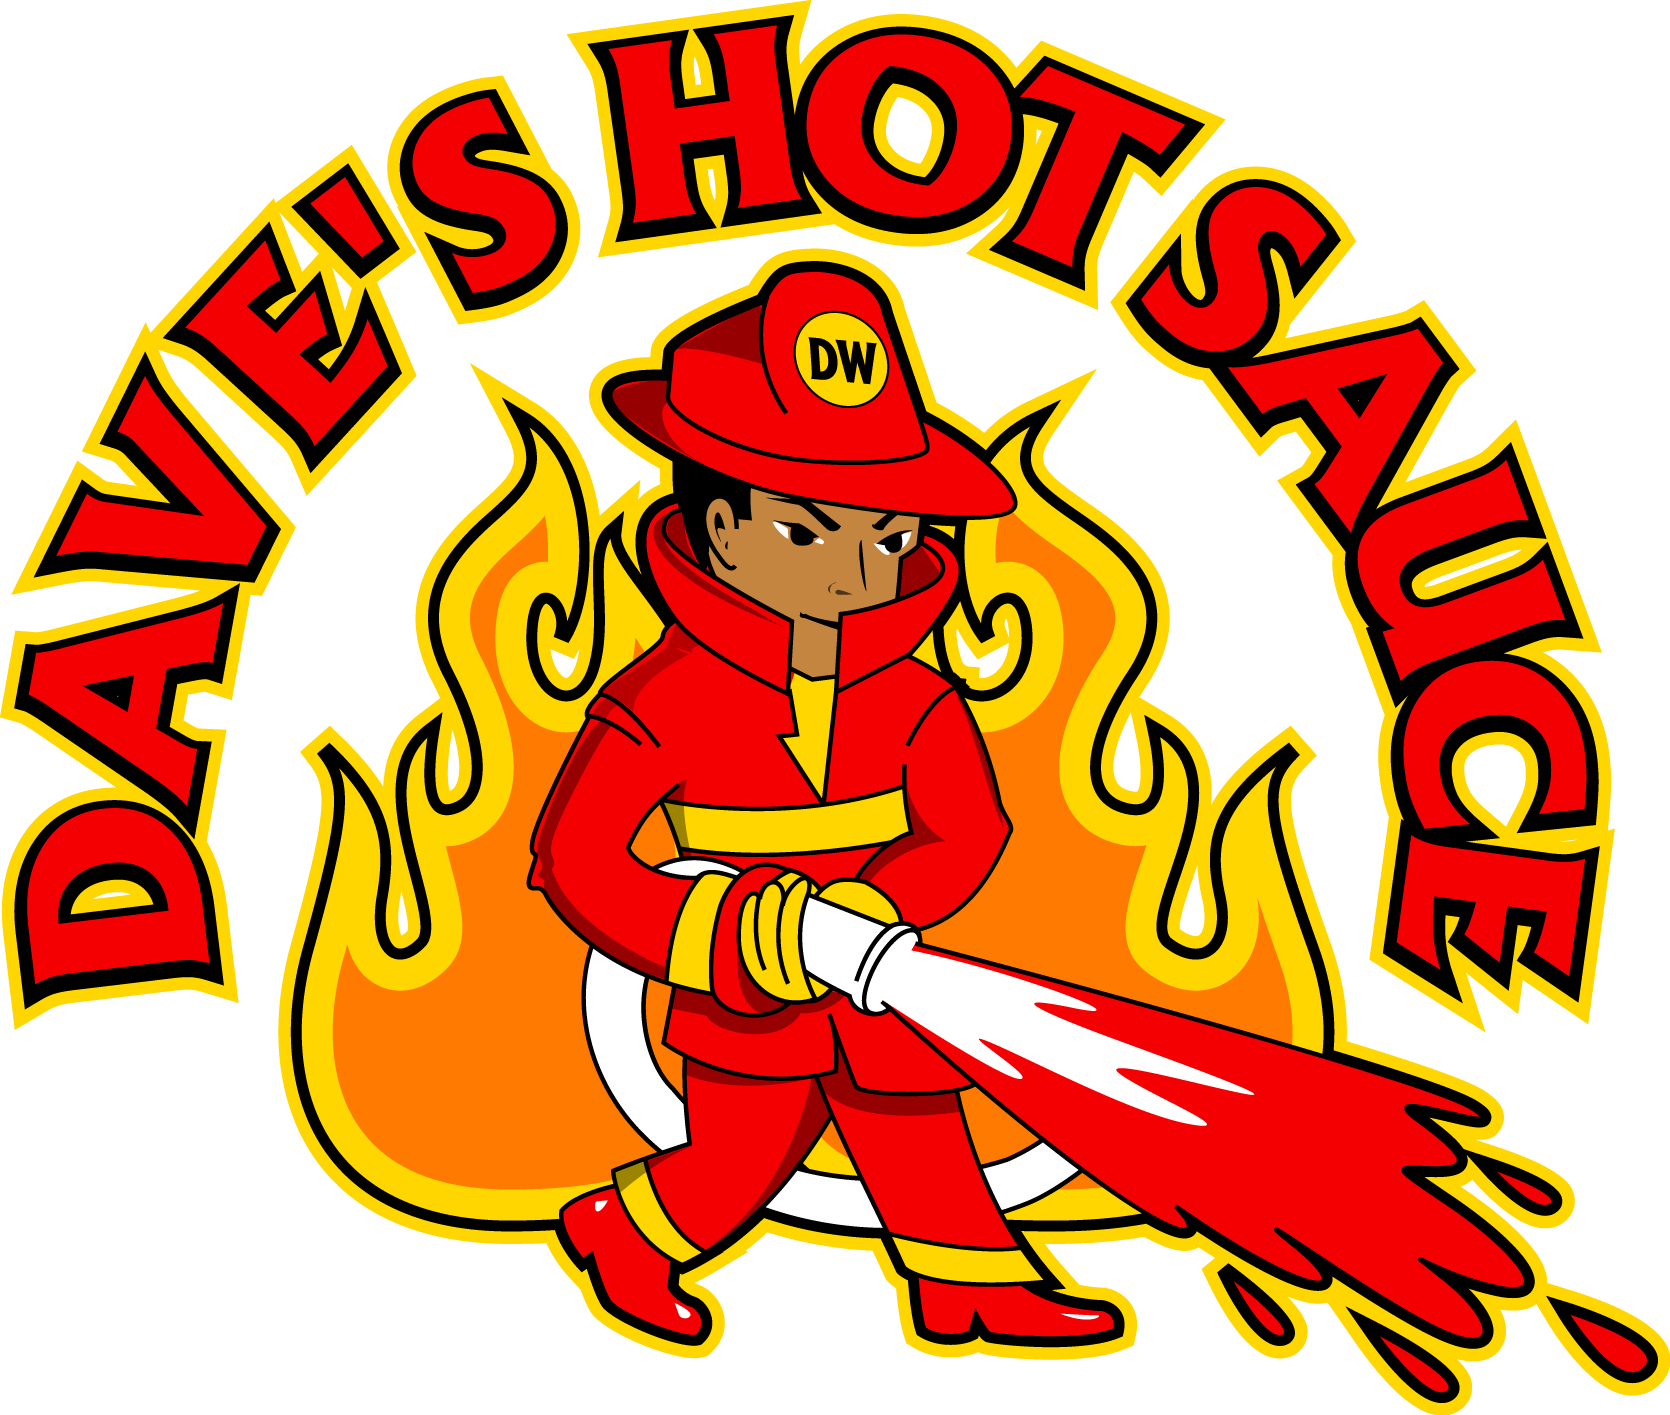 Dw hot sauces this. Taste clipart food tasting